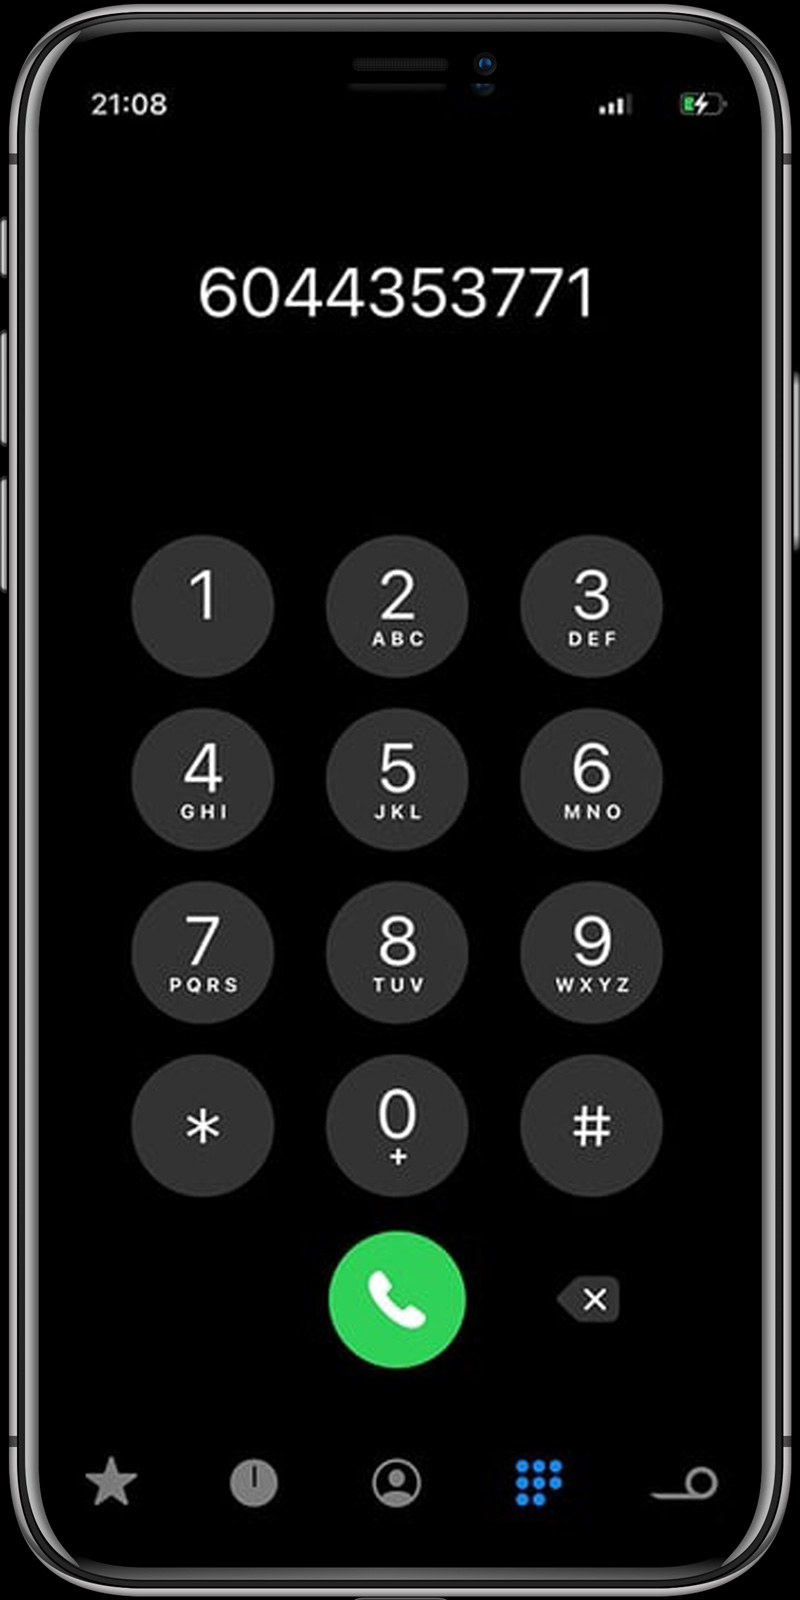 phone with contact number